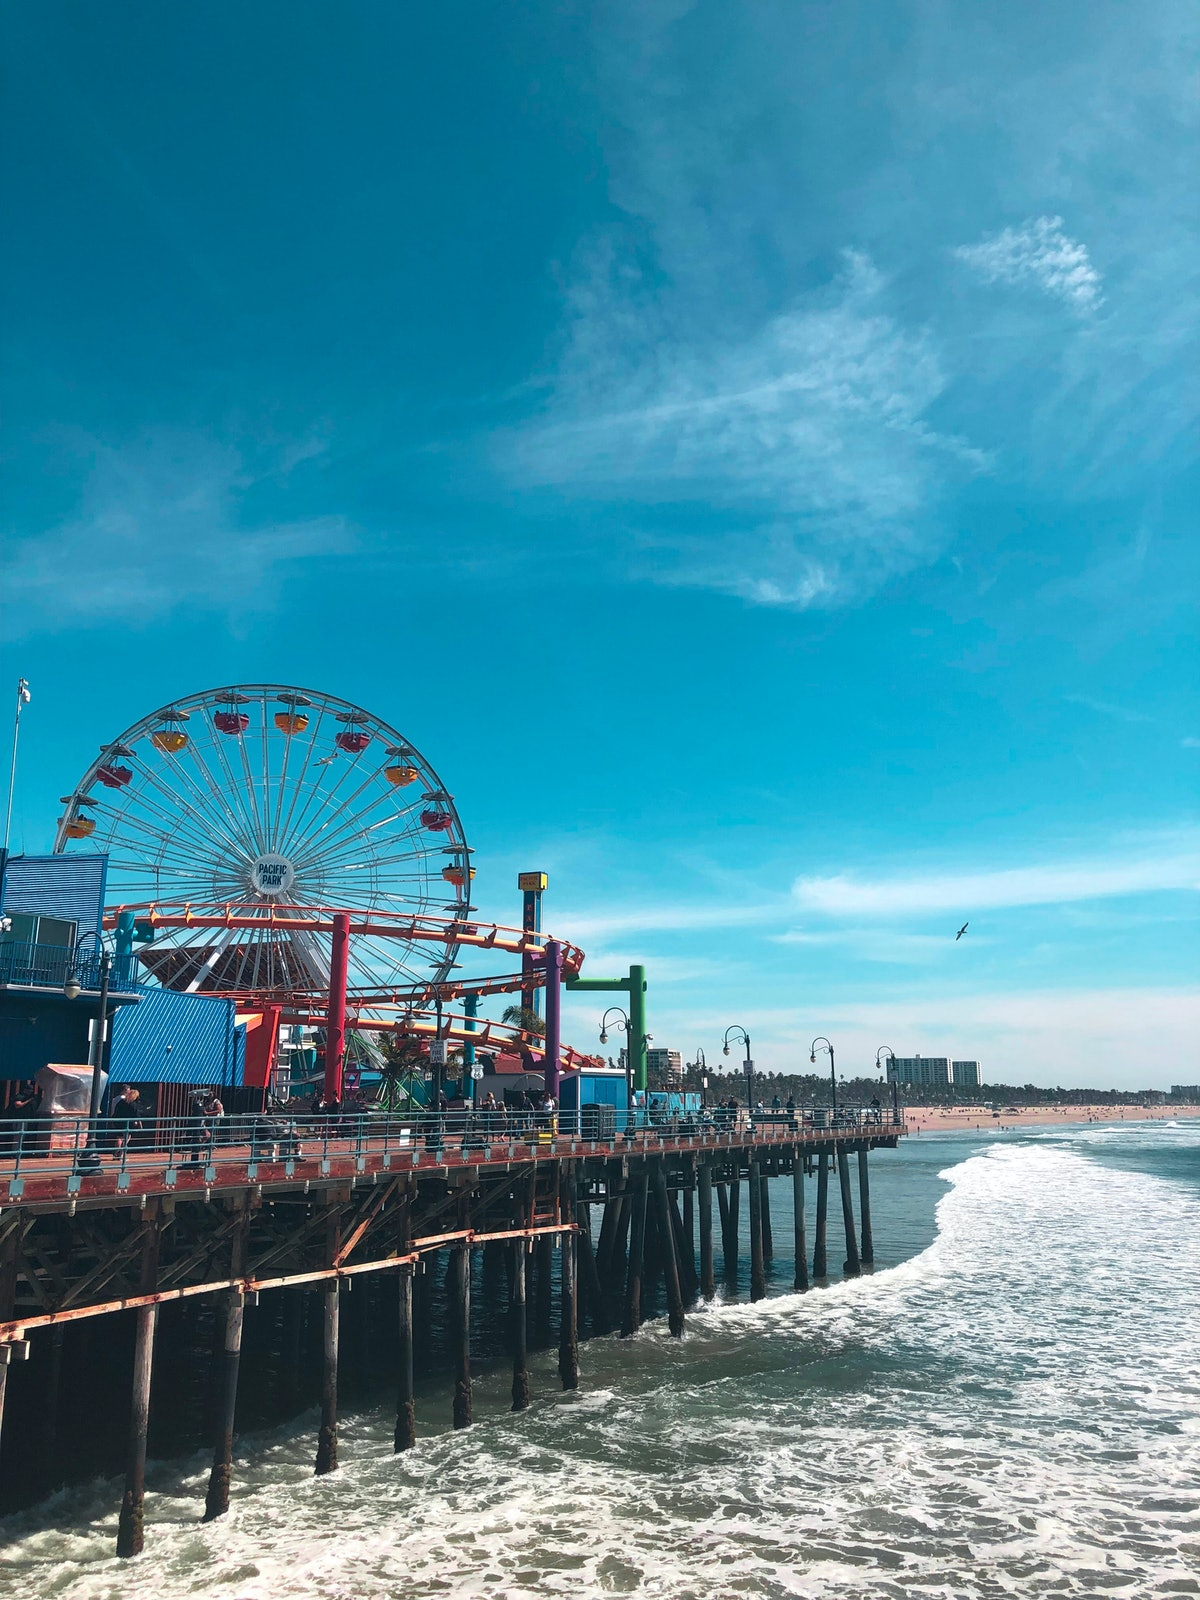 The Santa Monica Pier in California features a carousel, Ferris wheel, and lots of colorful rides on the beach.